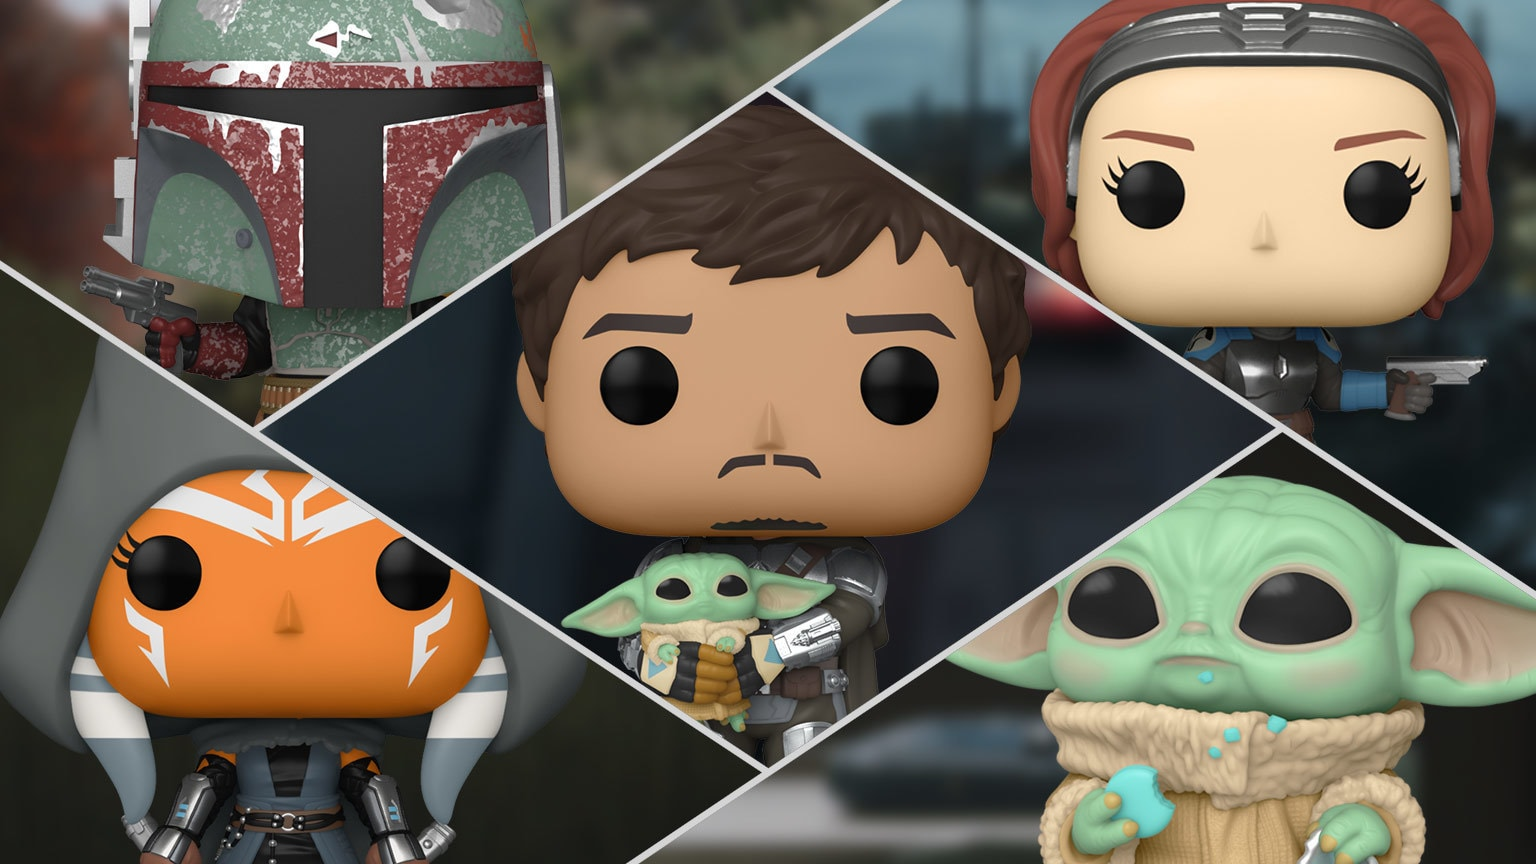 Mando Shows his Face in Funko's New The Mandalorian Pop! Bobbleheads – Exclusive Reveal